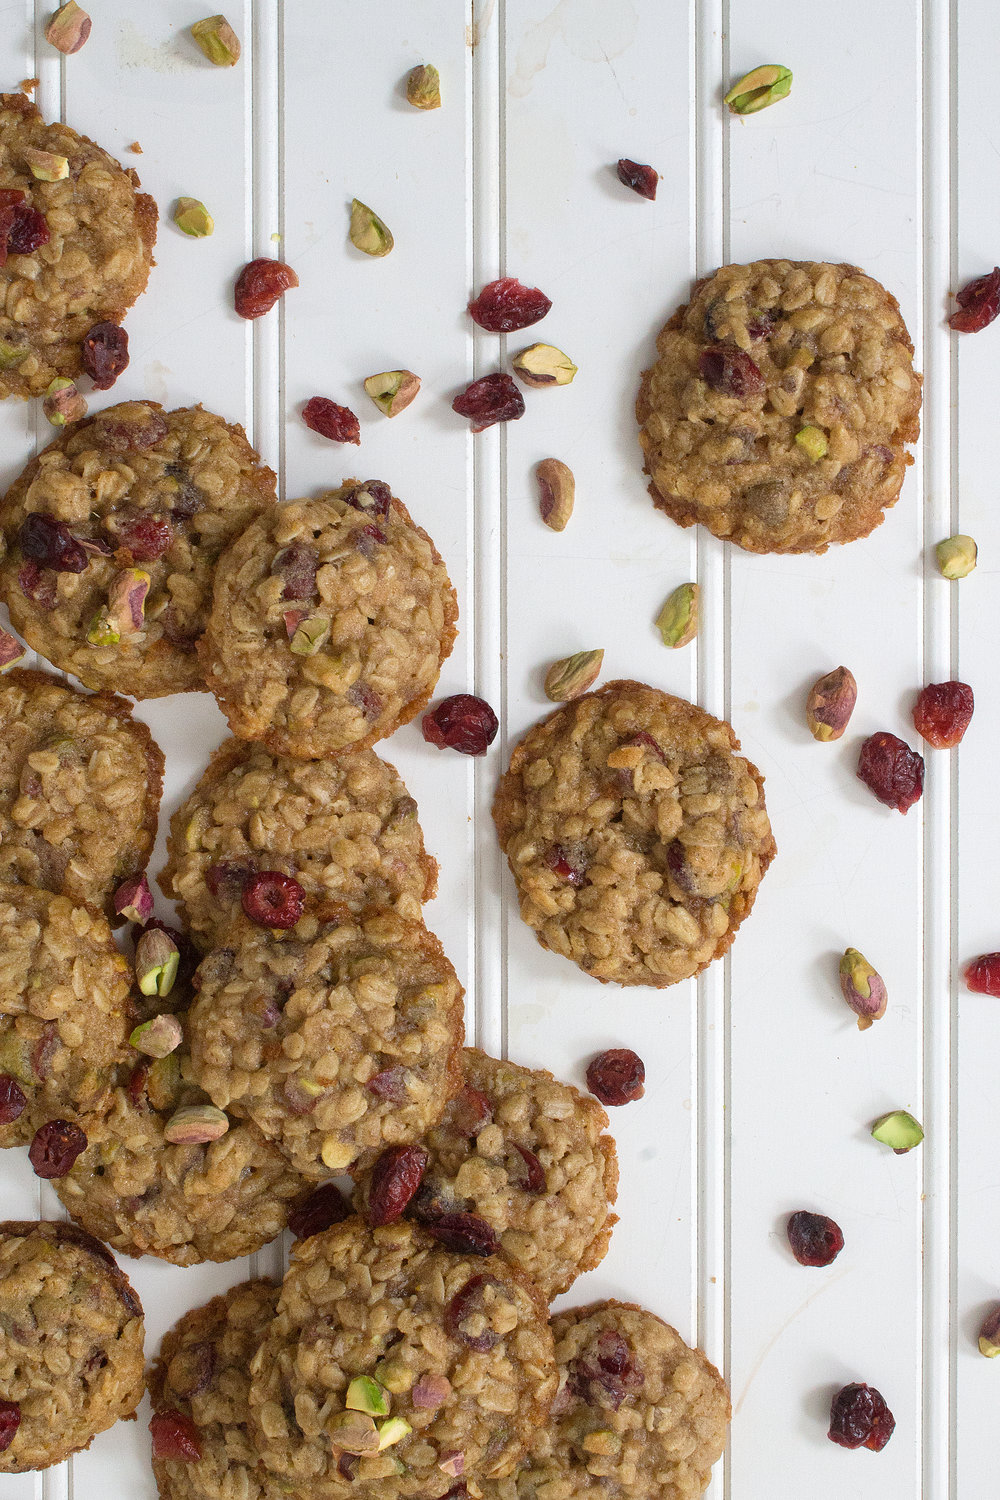 Oatmeal Cookies with Pistachios and Cranberries. Grab the recipe: Unusuallylovely.com